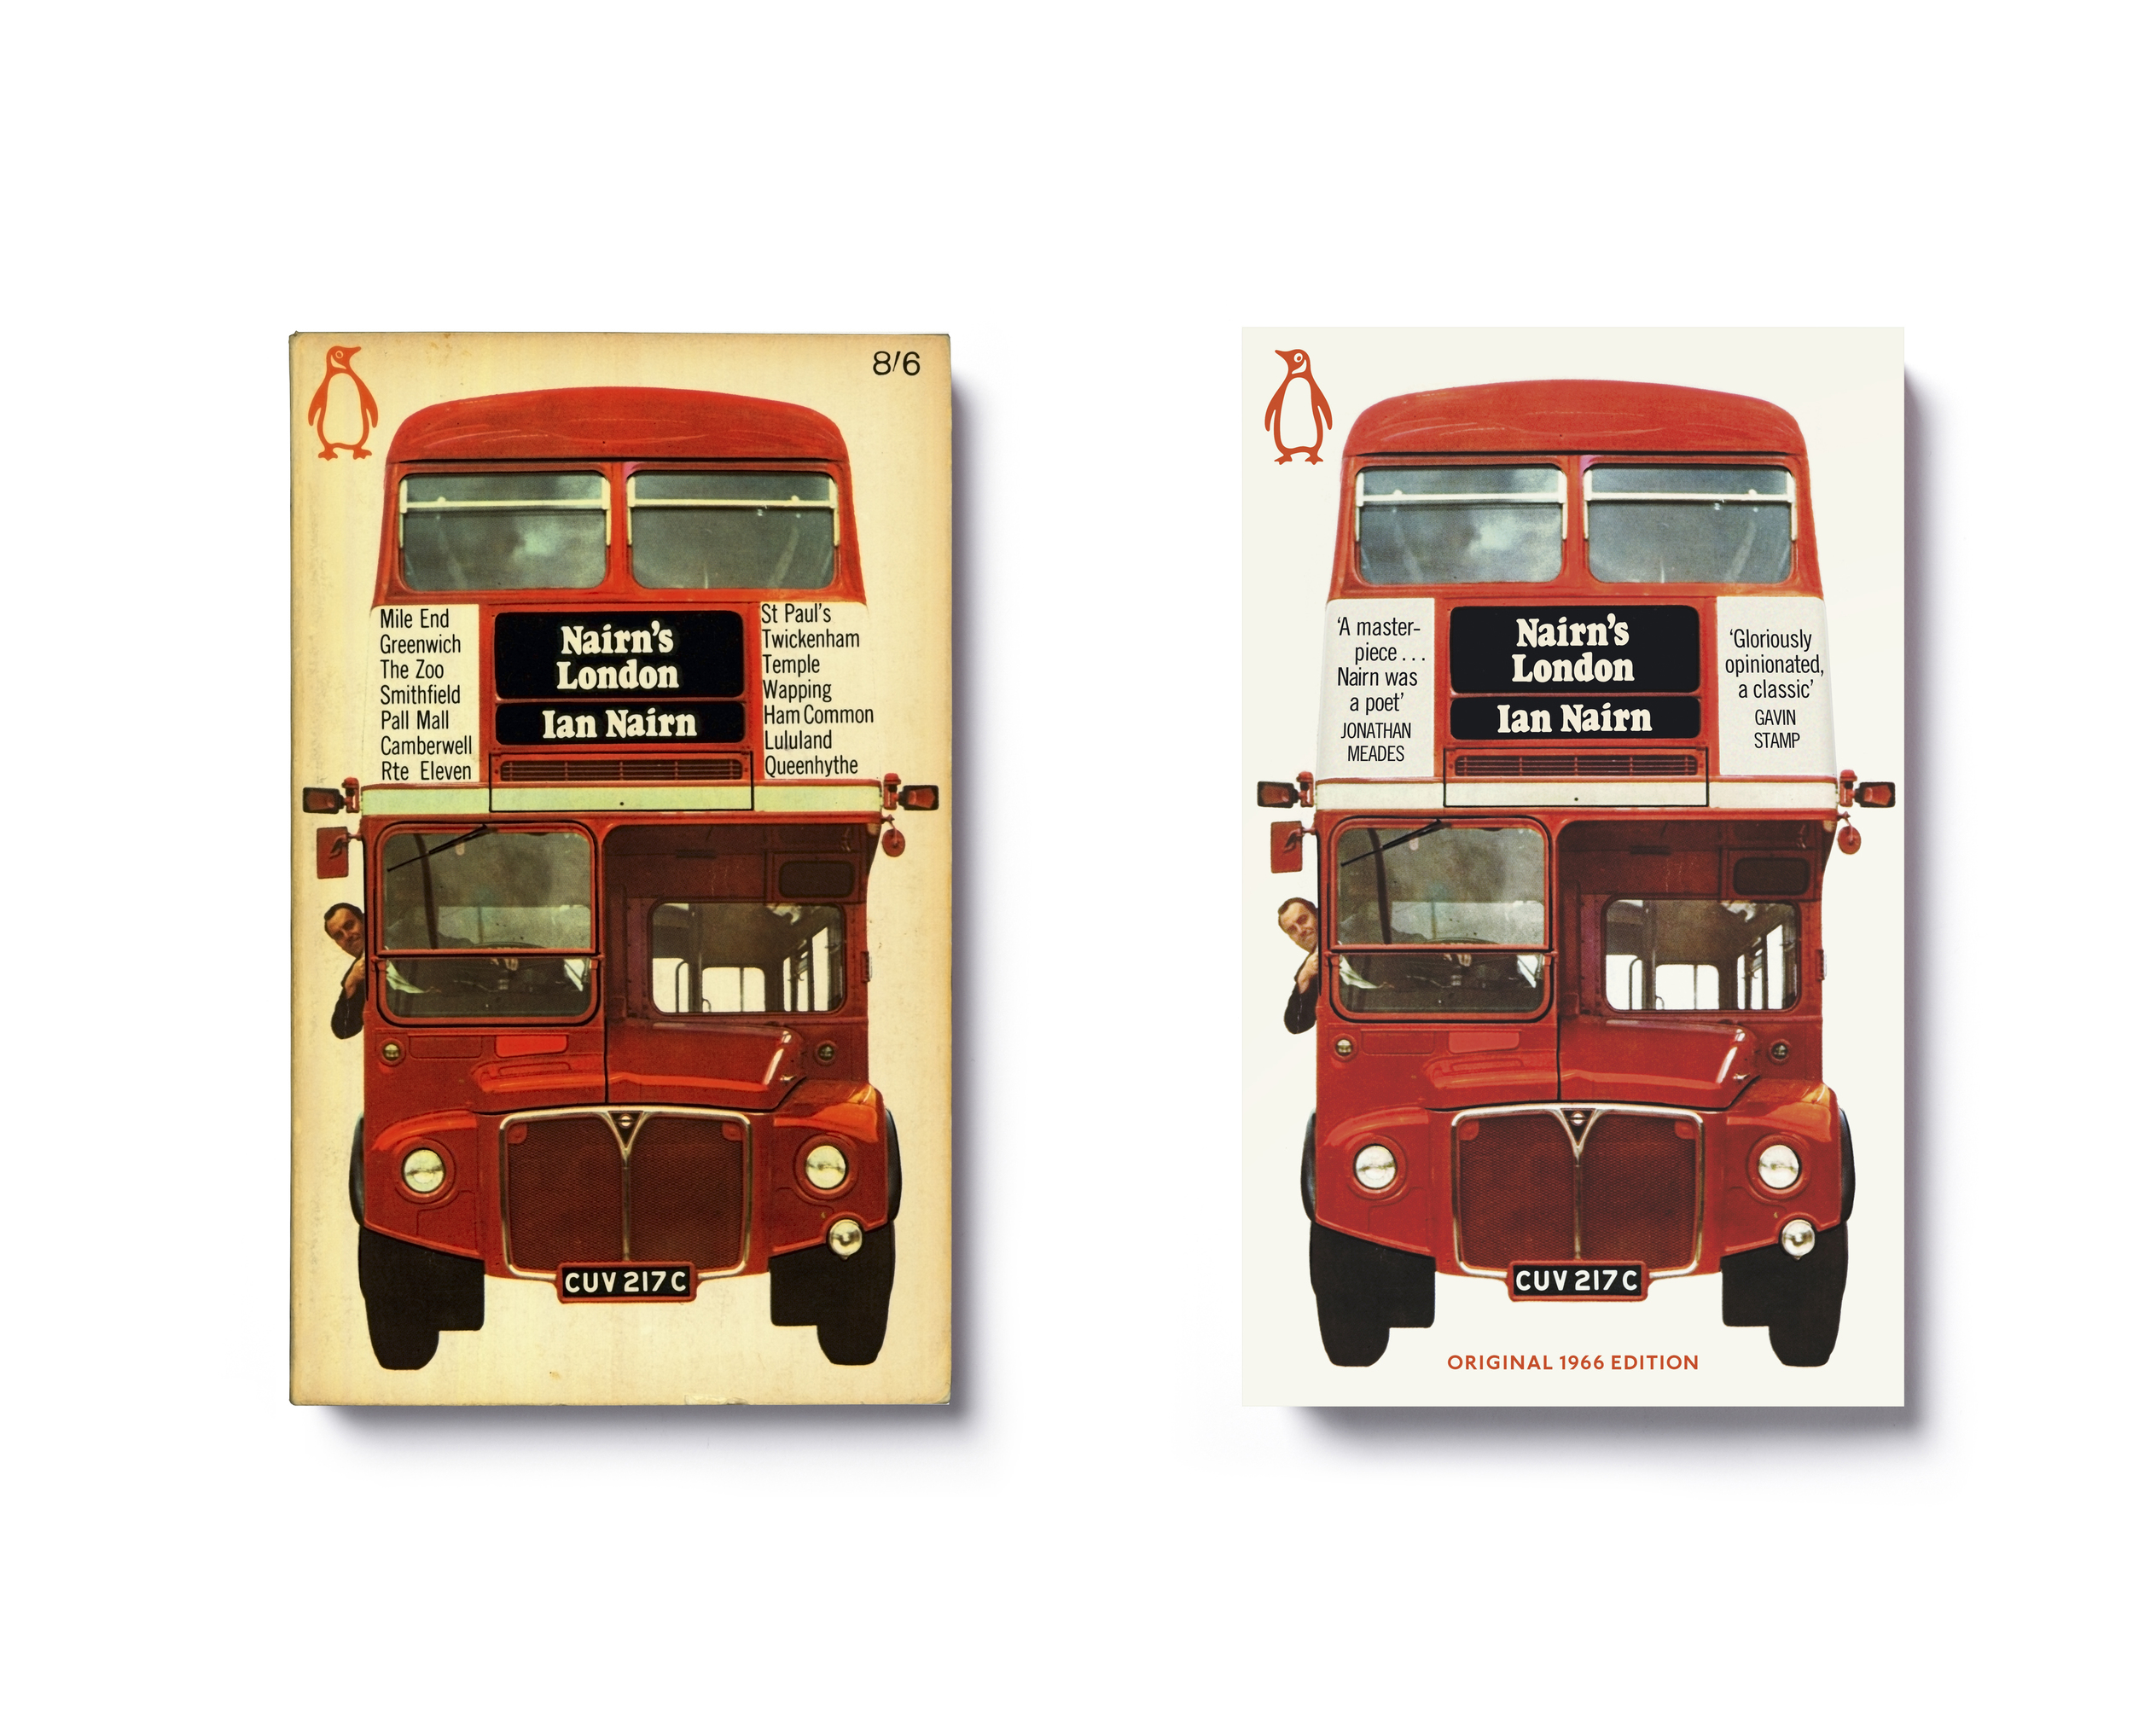 Nairn's London by Ian Nairn -  Left : 1966 paperback design: Michael Norris photography: credit to come  Right : 2014 paperback edition update: Jim Stoddart